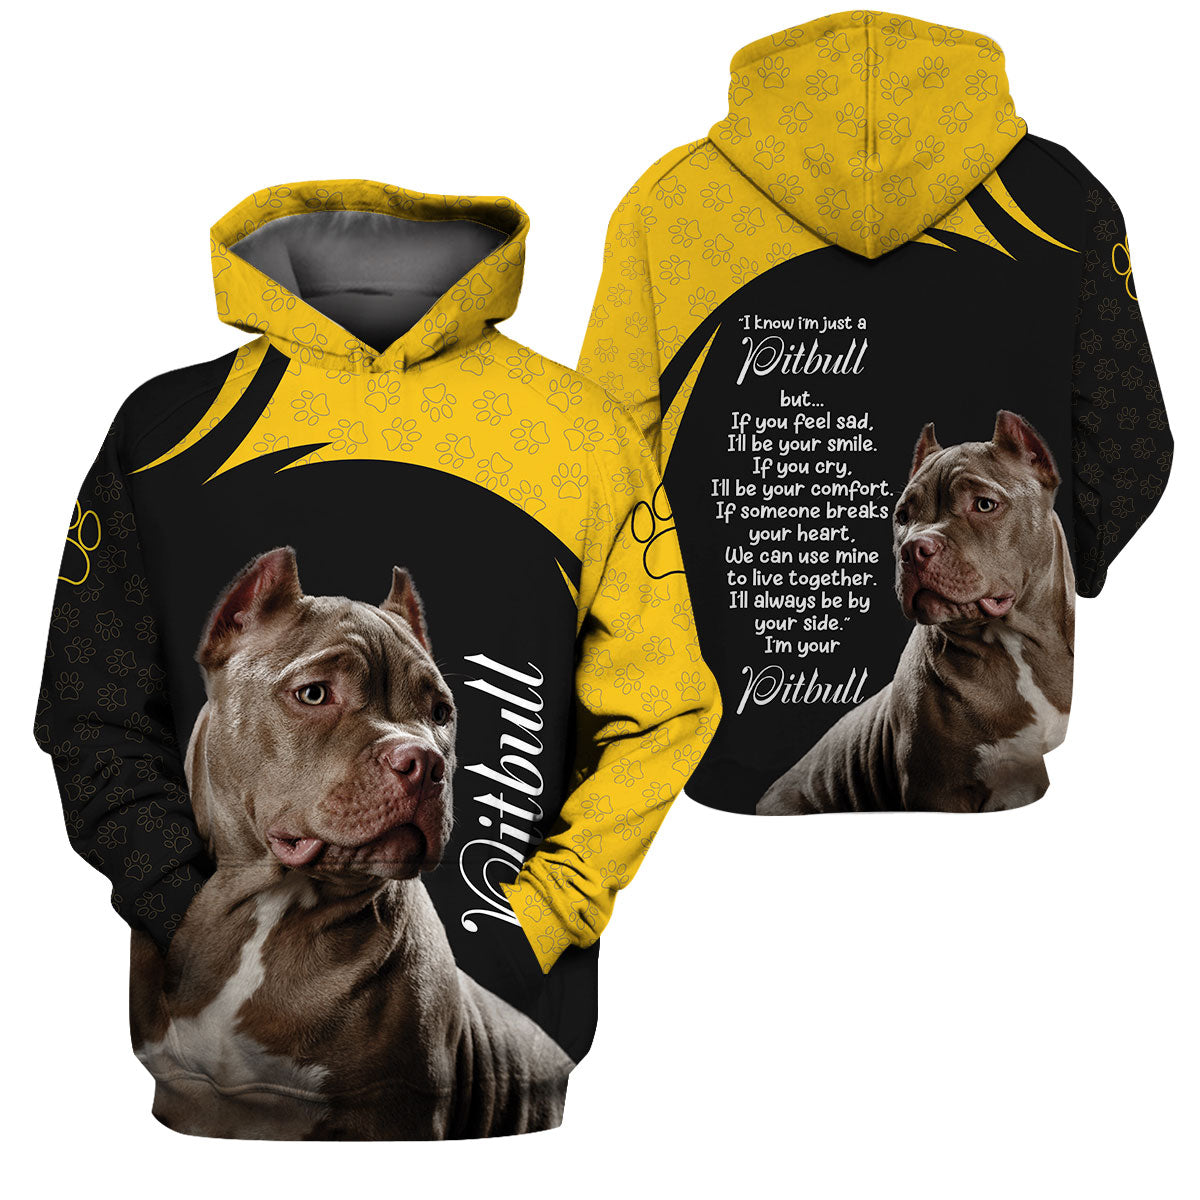 3D Apparel - I'll Always Be By Your Side - Pitbull